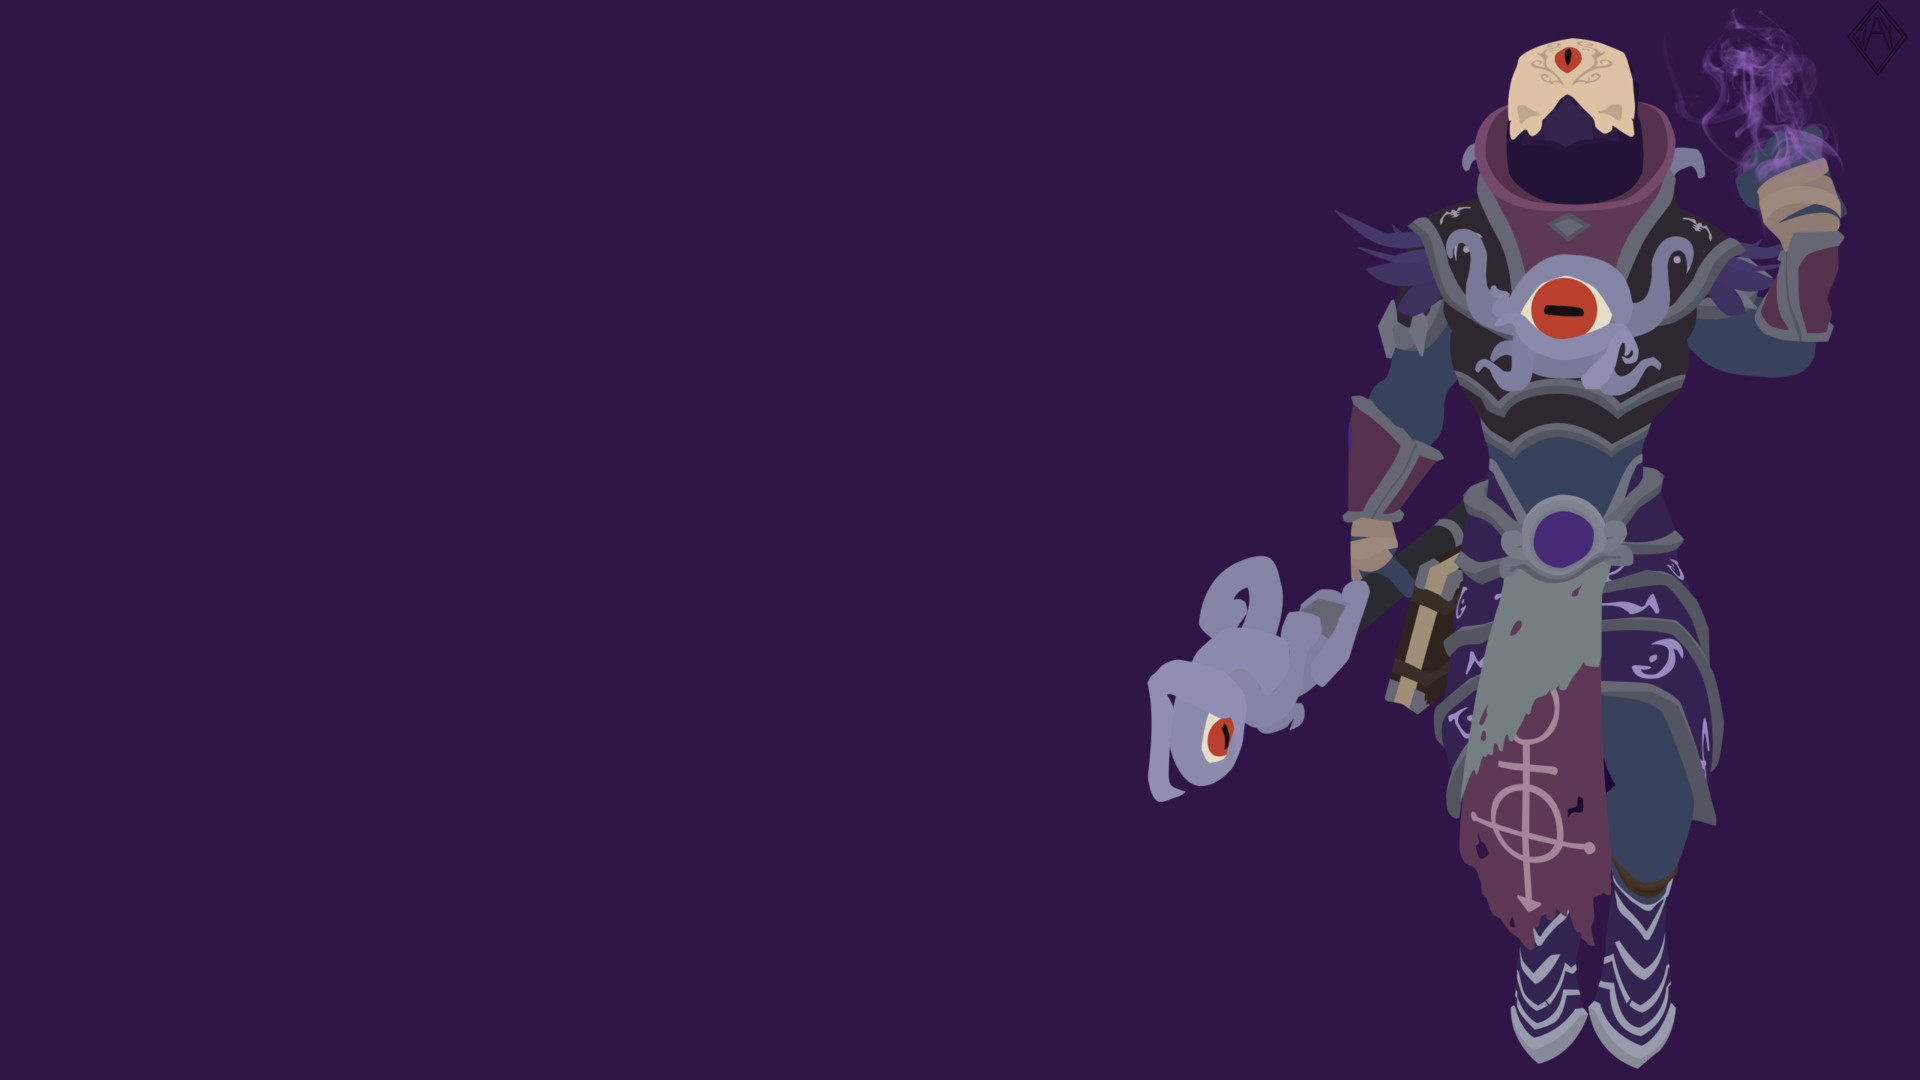 Artstation smite eldritch ra minimalist wallpaper jay r - Eldritch wallpaper ...